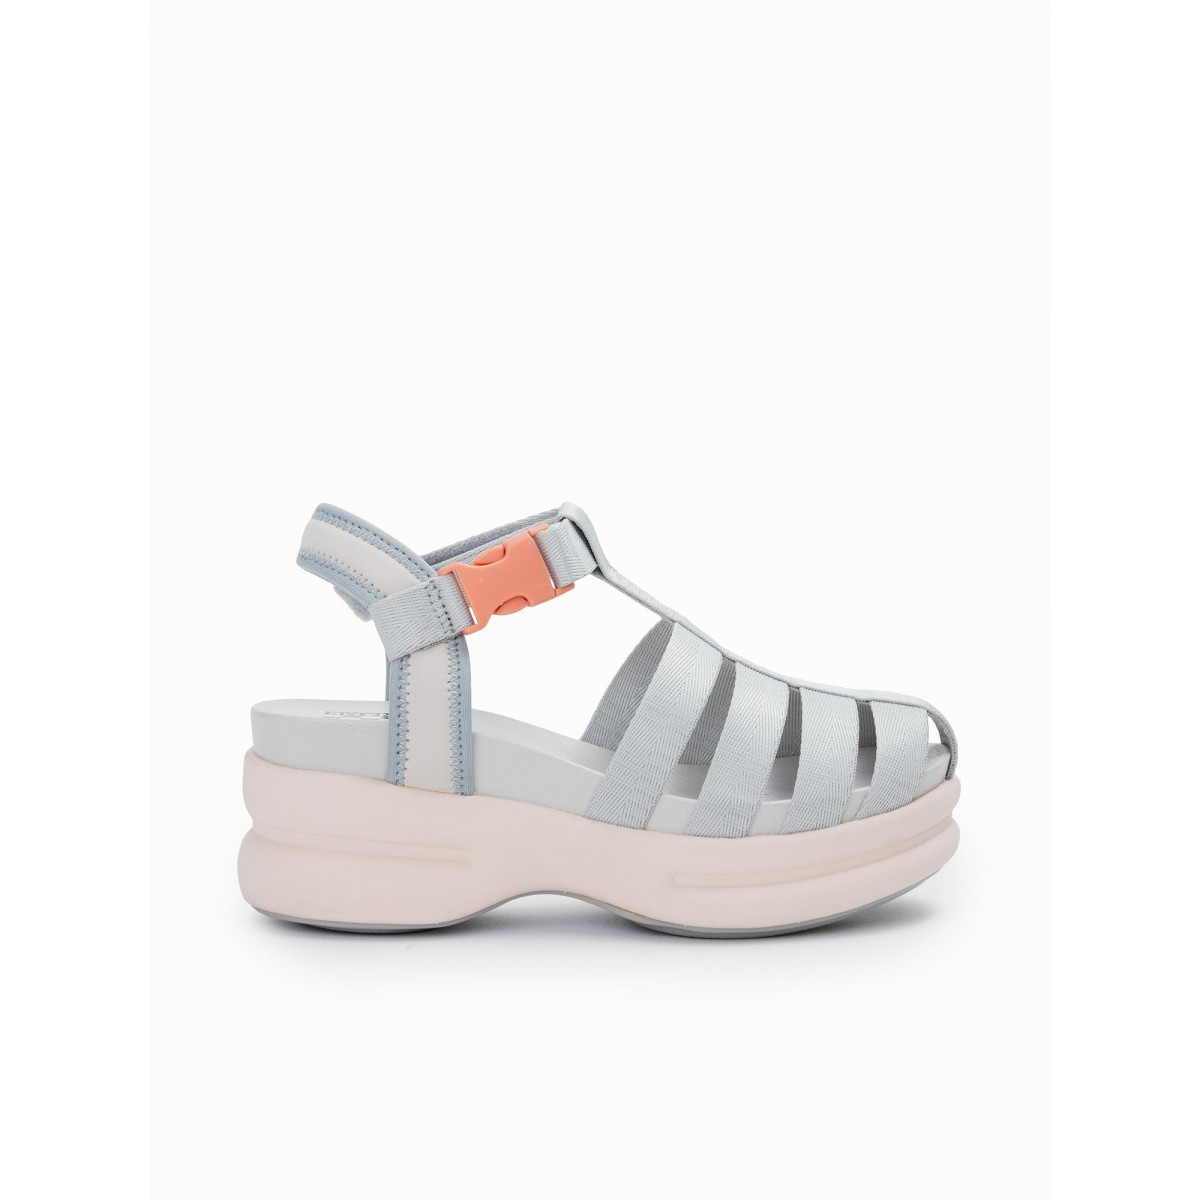 No Name CONCRETE STRAPPY - NYLON - L.GREY SOLE L.PINK